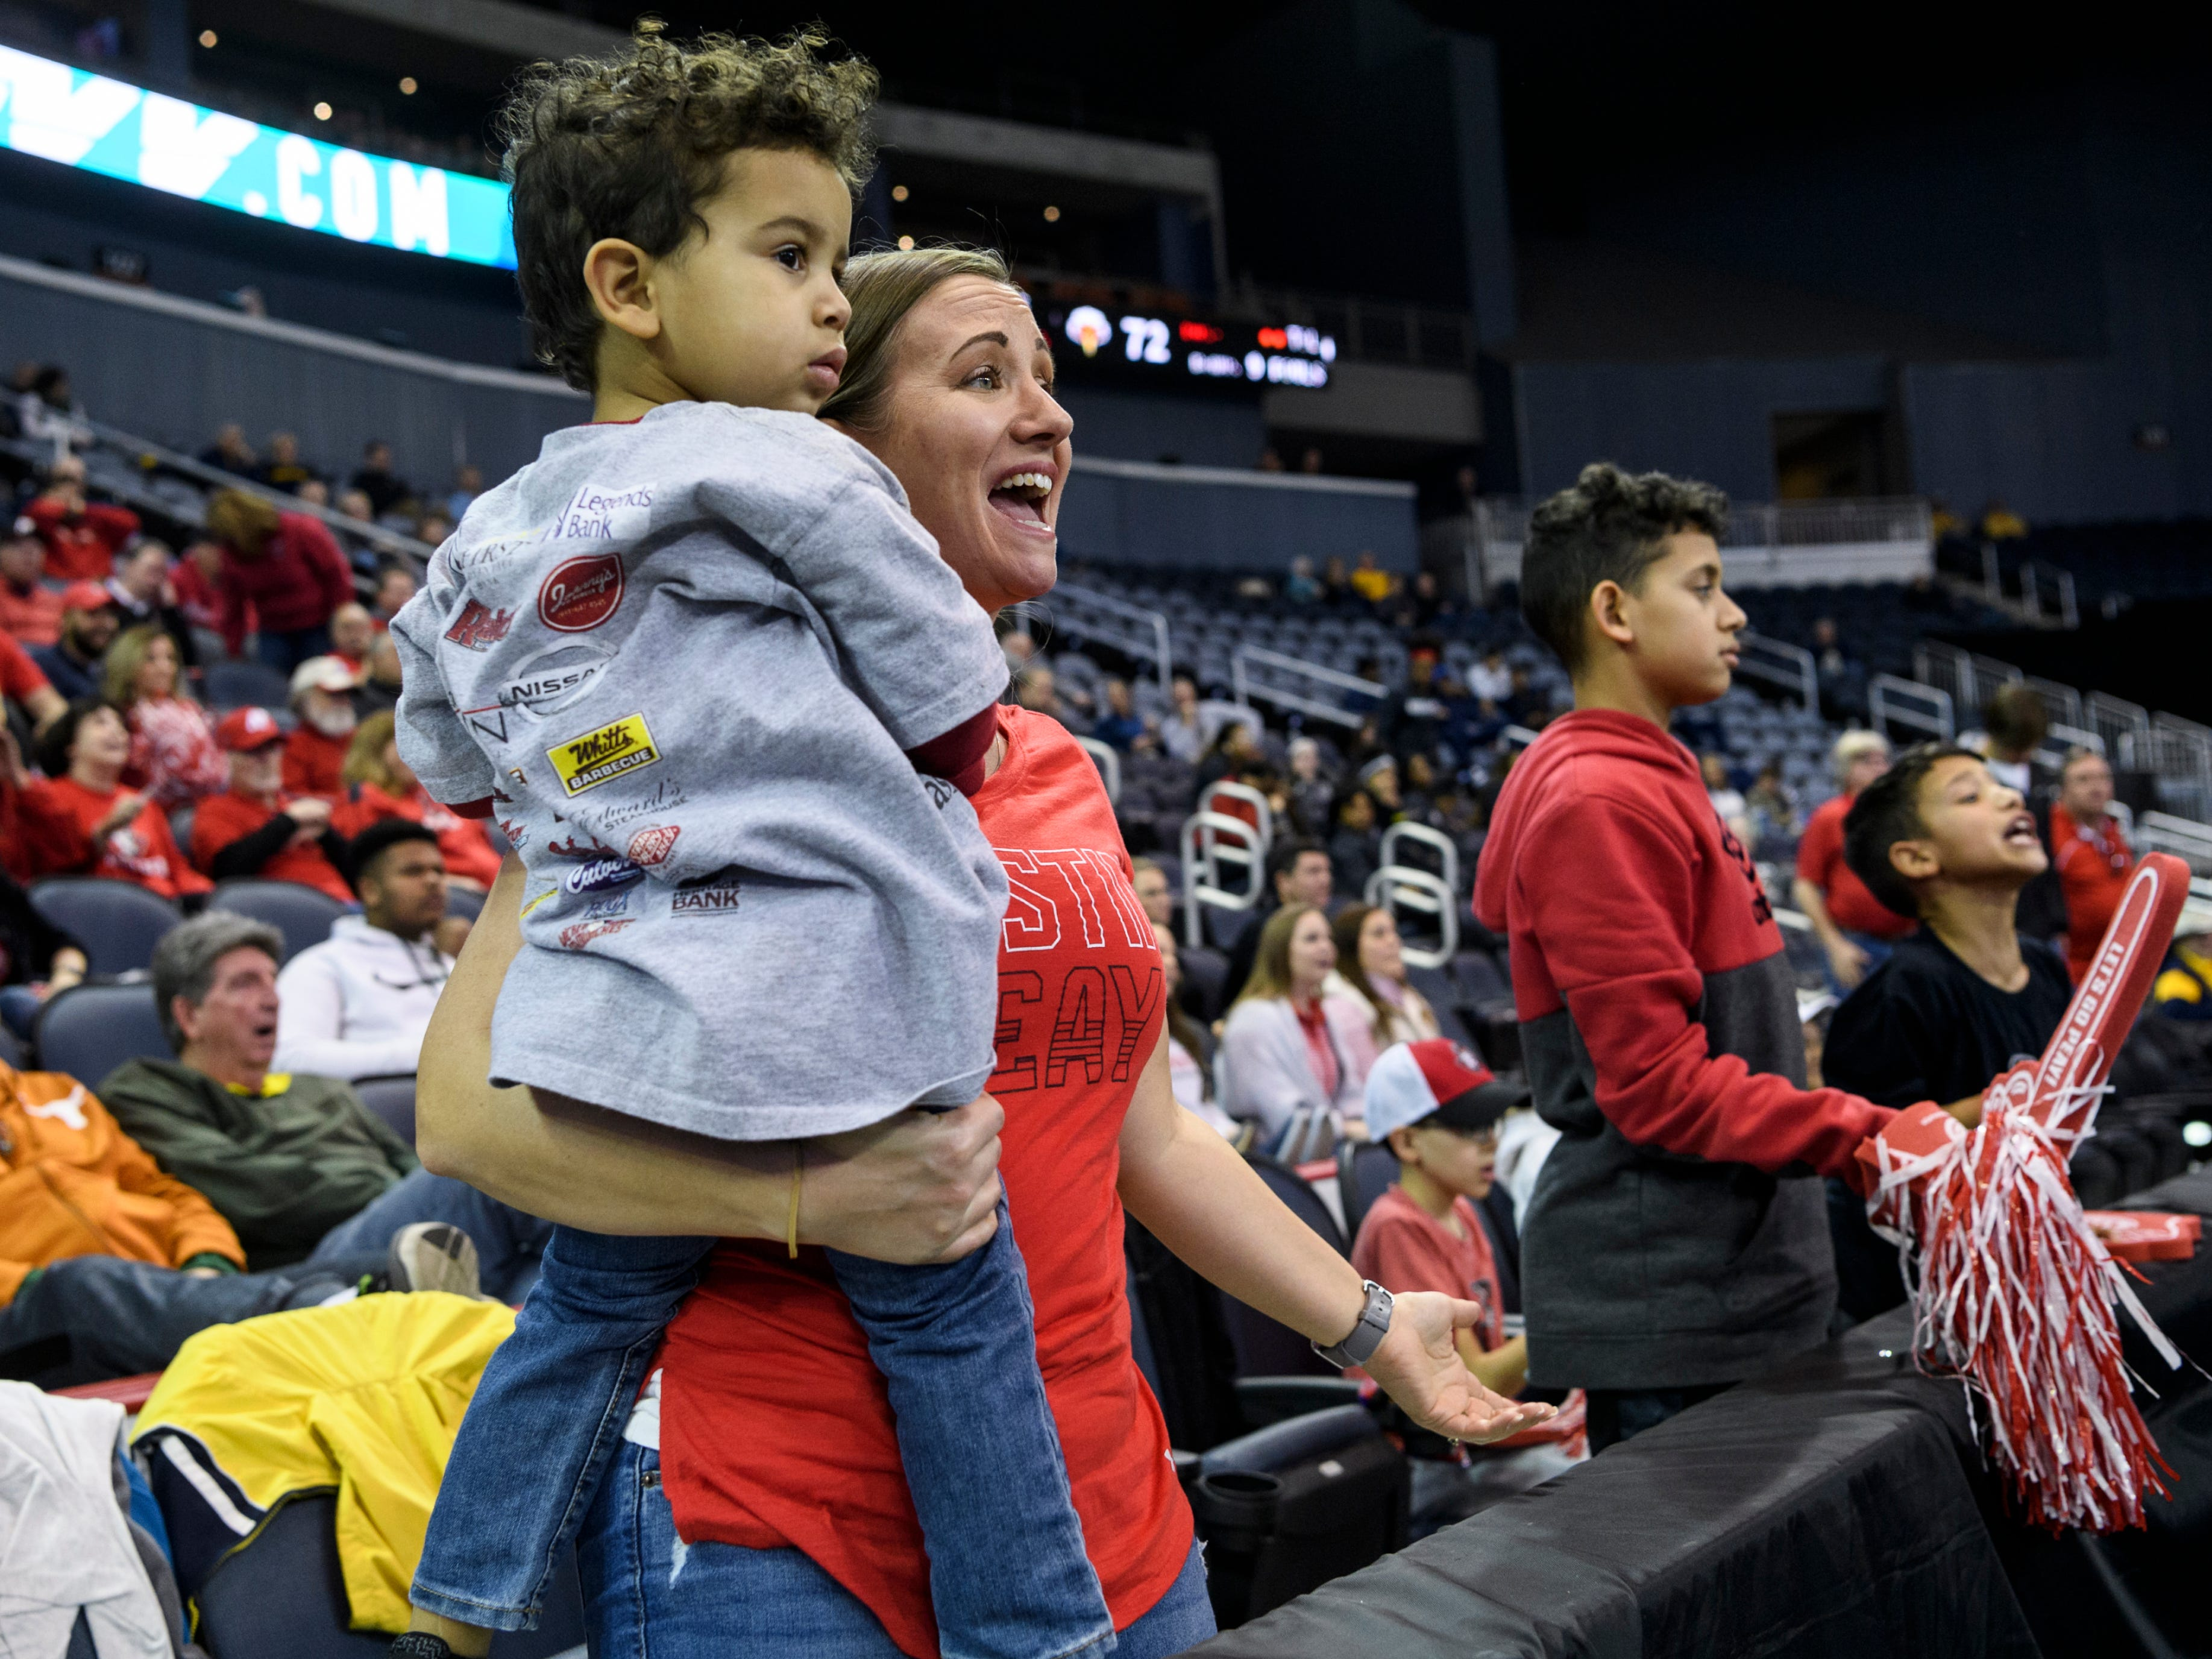 Danielle Cabrera voices her frustration with a foul call on the Austin Peay State University Governors while watching the game with her sons Landon, 3, Jayden, 12, and Braxton, 9, during the Ohio Valley Conference tournament quarterfinals against the Morehead State Eagles at Ford Center in Evansville, Ind., Thursday, March 7, 2019. Danielle's husband Rick Cabrera works as an assistant coach for the Governors men's basketball team.